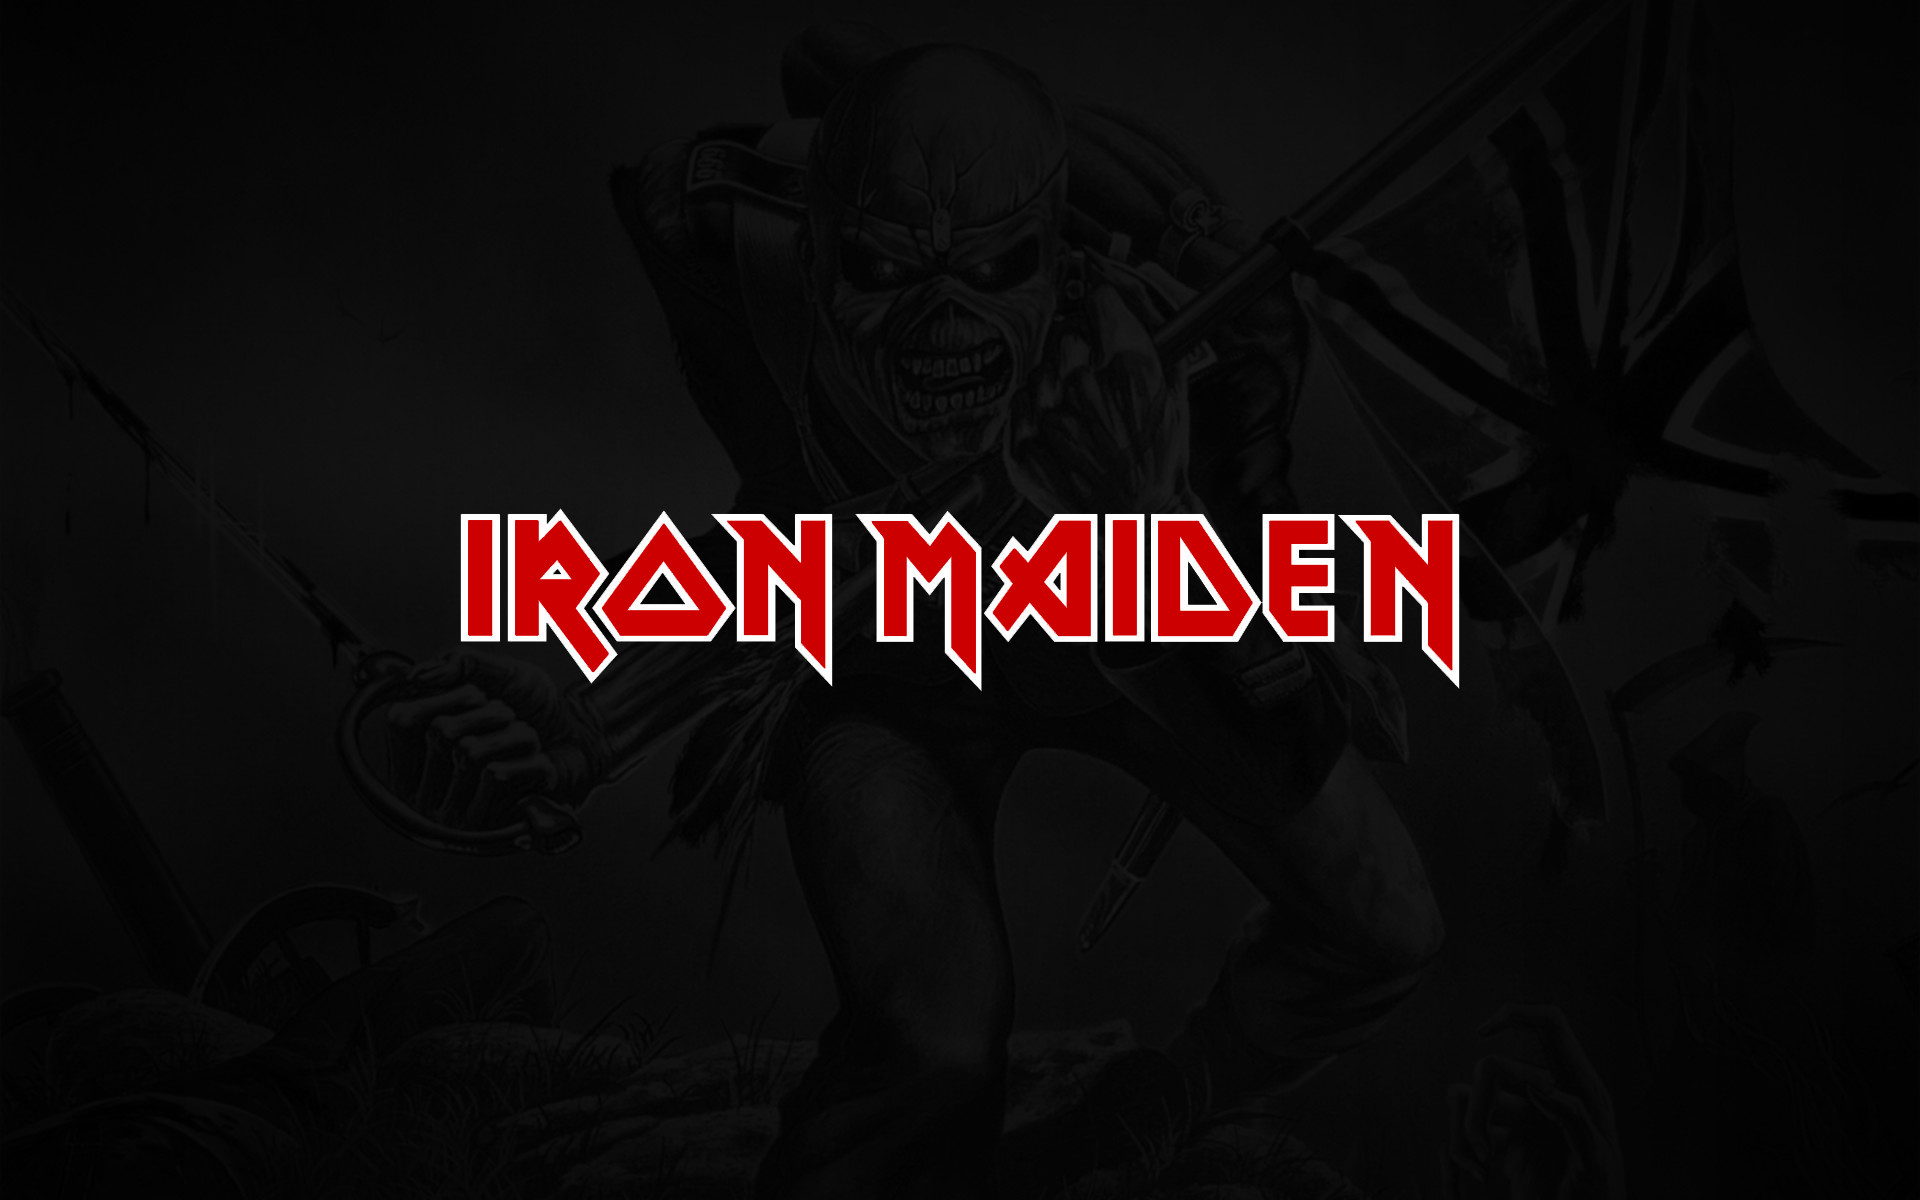 … iron maiden wallpapers for computers wallpapersafari …